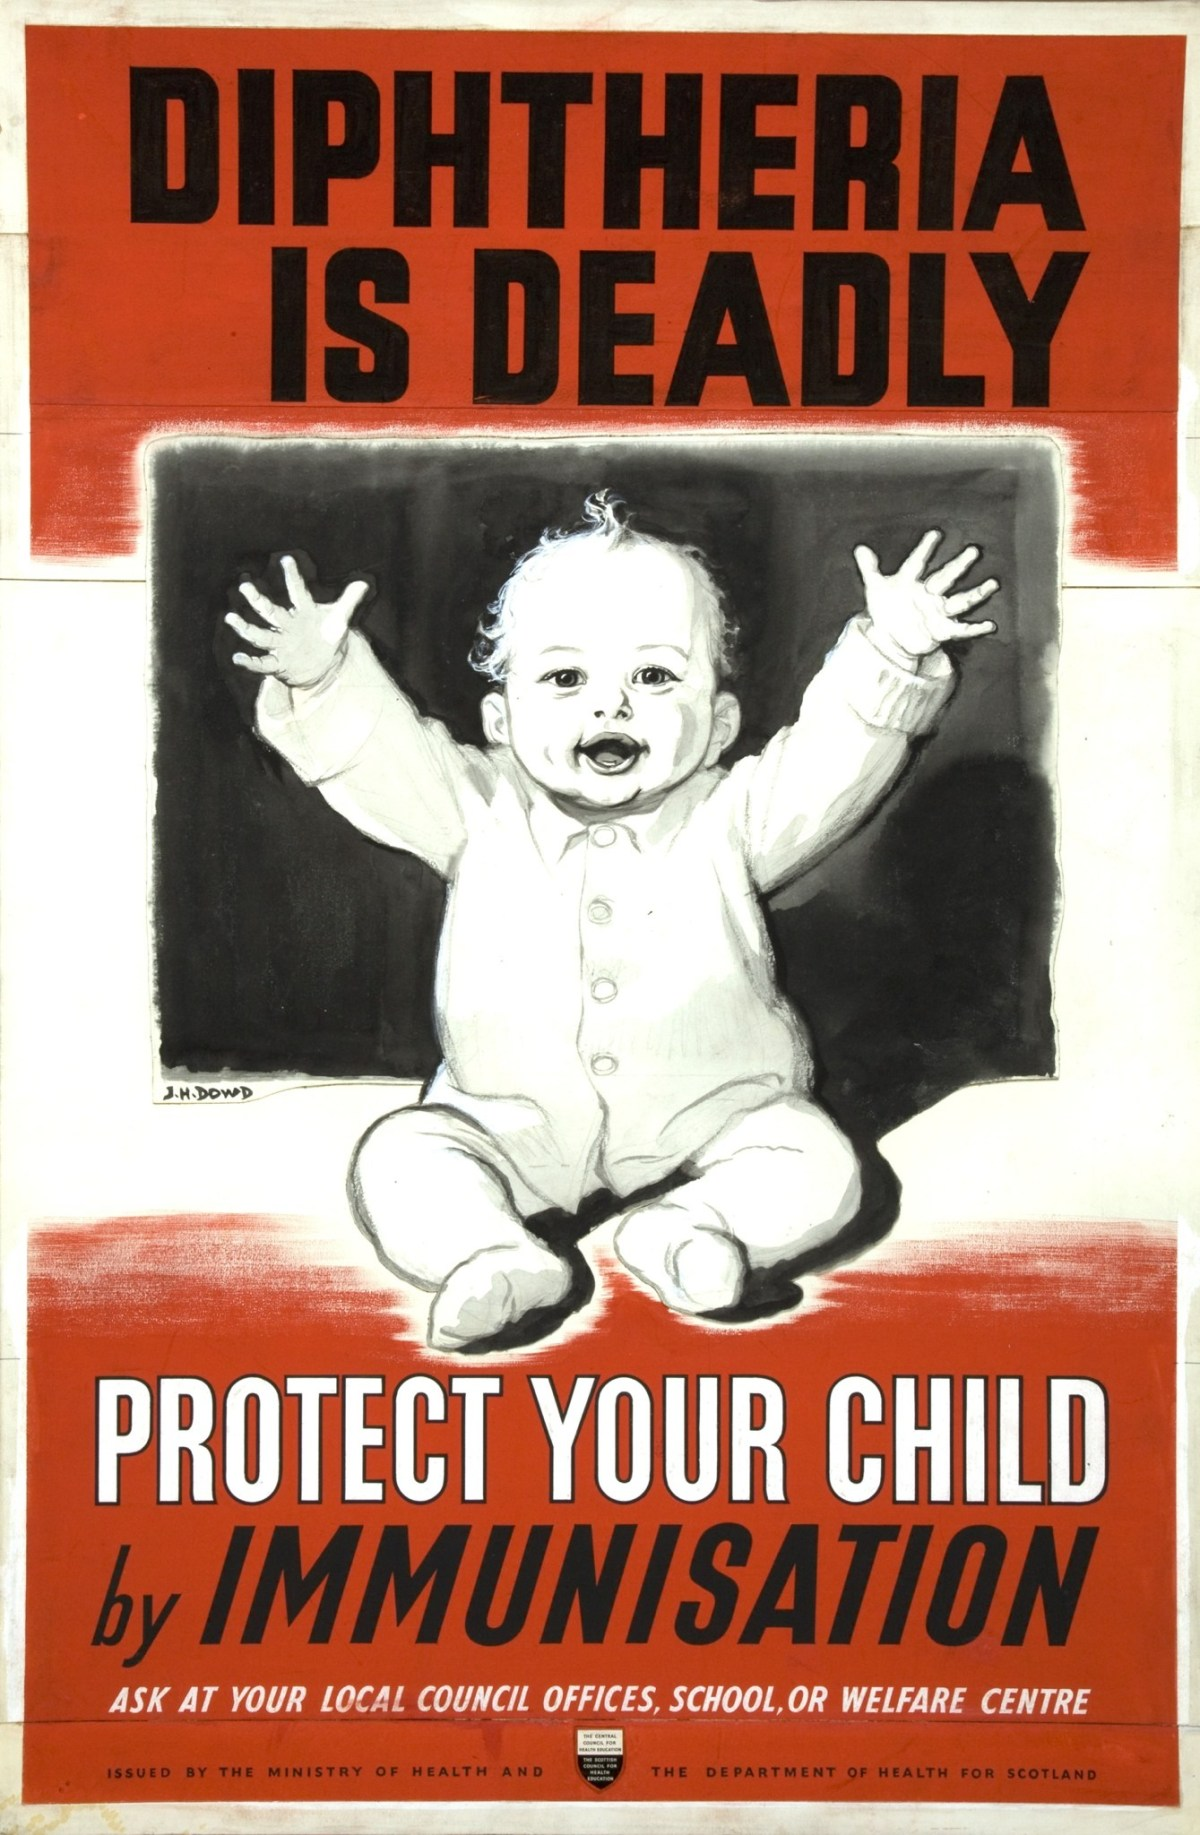 DTP vaccines protects against diphtheria, tetanus, and pertussis.